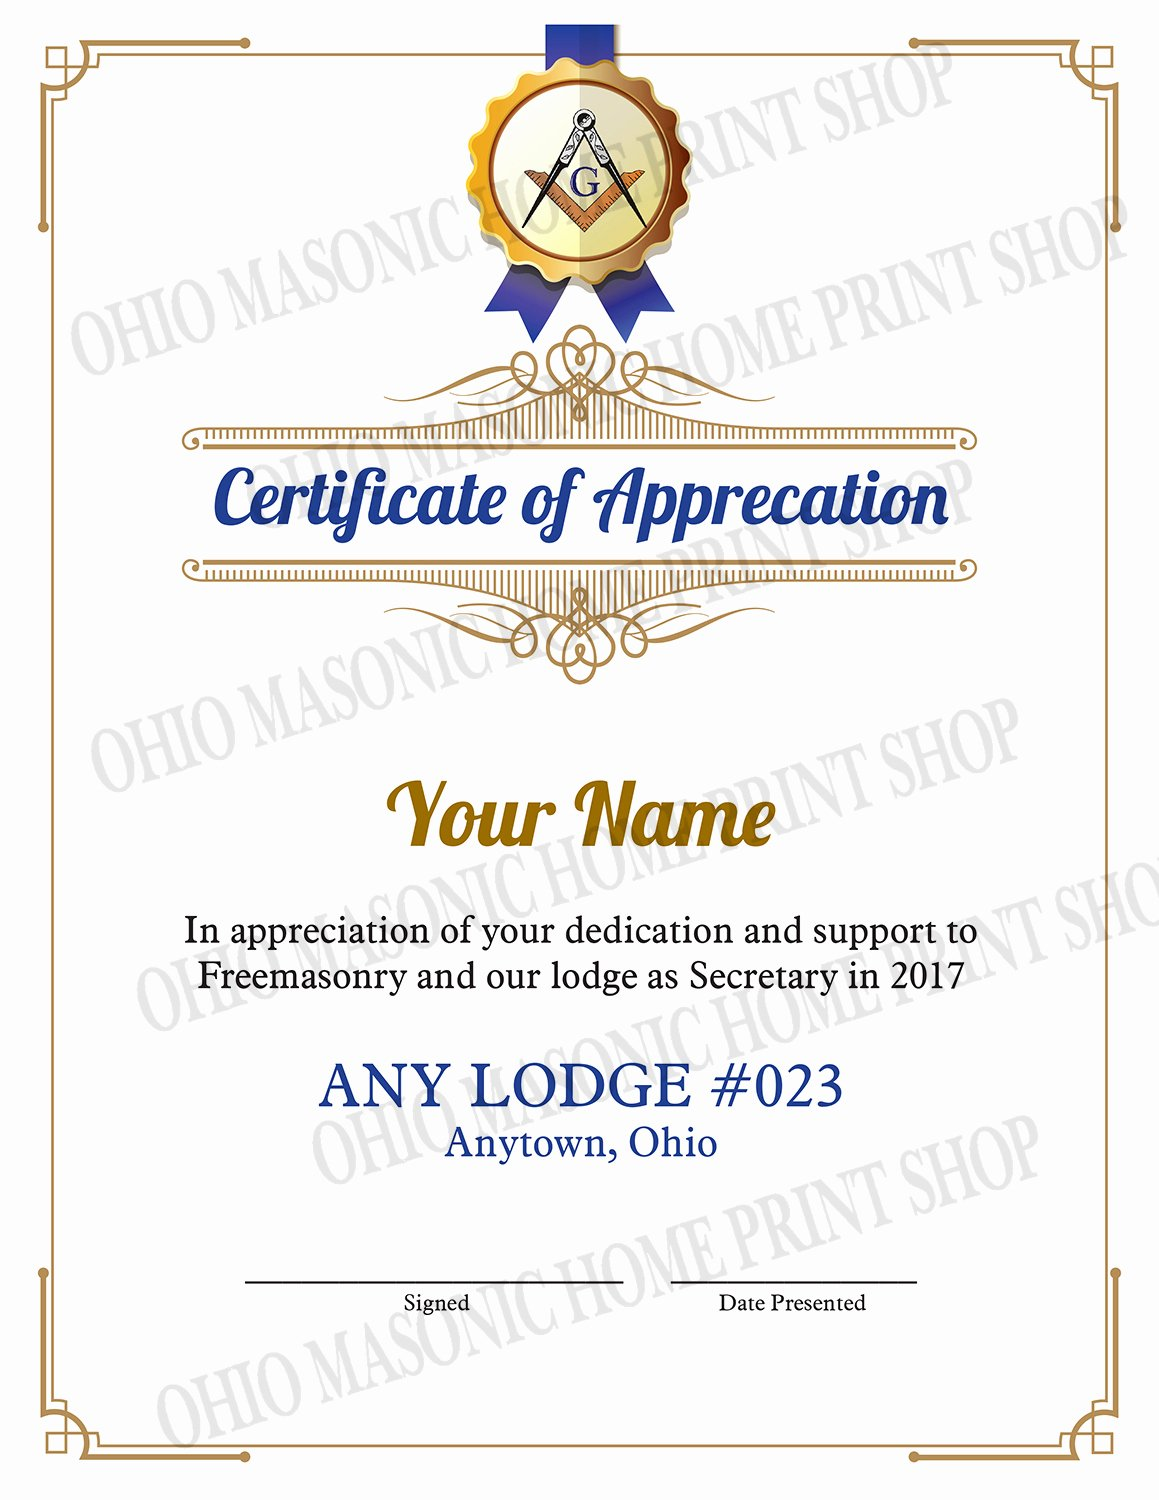 Masonic Certificate Of Appreciation Fresh Occasion Certificate the Ohio Masonic Home Printshop